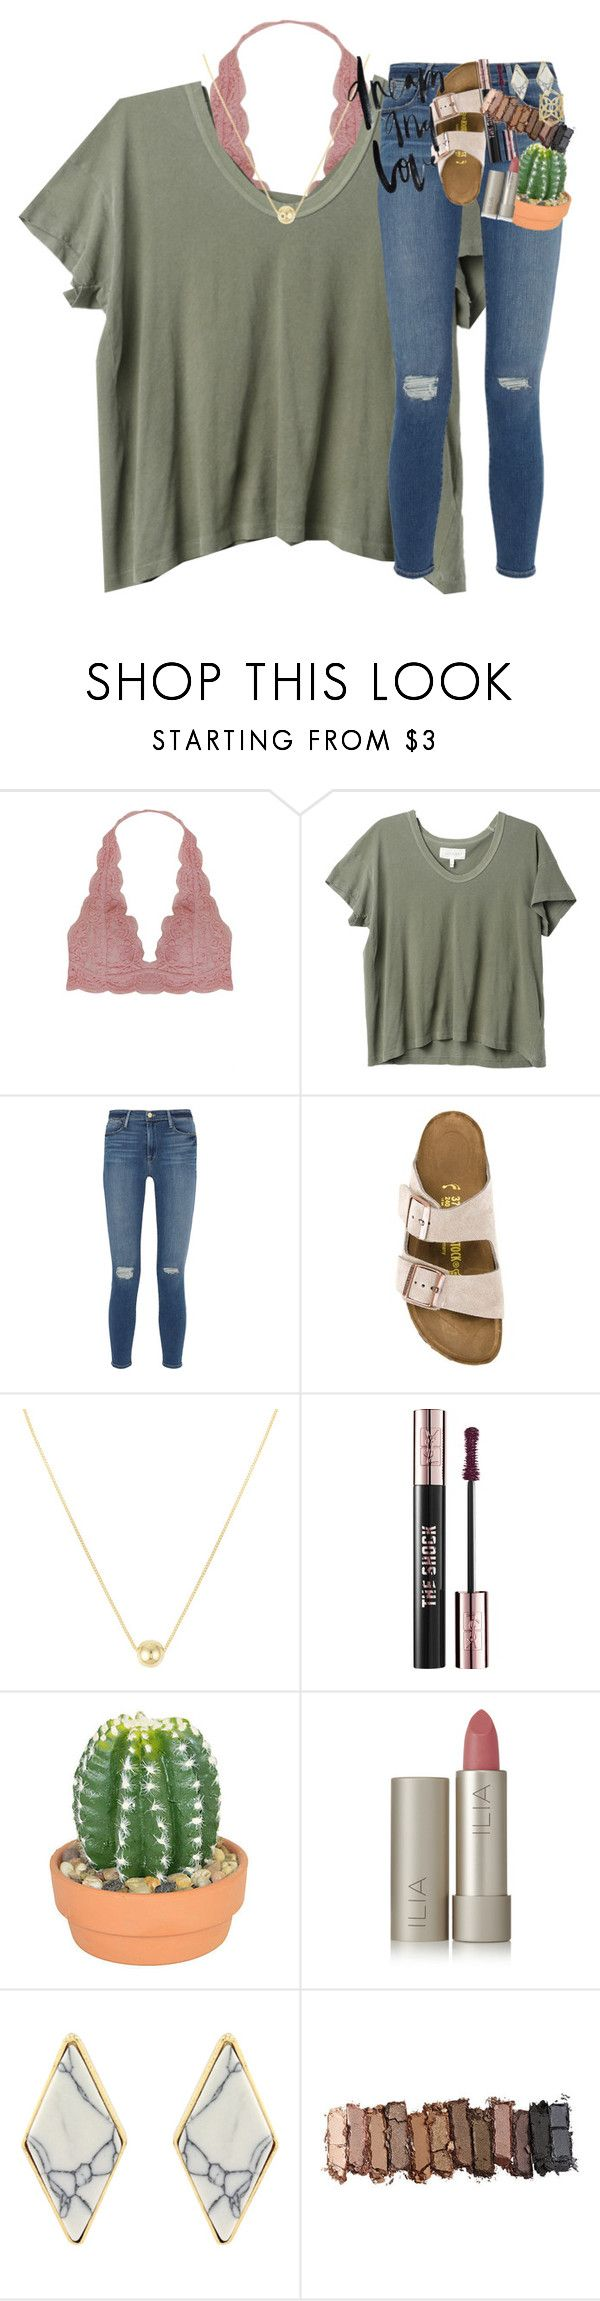 """""""how tall are you guys??"""" by classynsouthern ❤ liked on Polyvore featuring Humble Chic, The Great, Frame, Birkenstock, Yves Saint Laurent, The French Bee, Ilia, Urban Decay and Kendra Scott"""